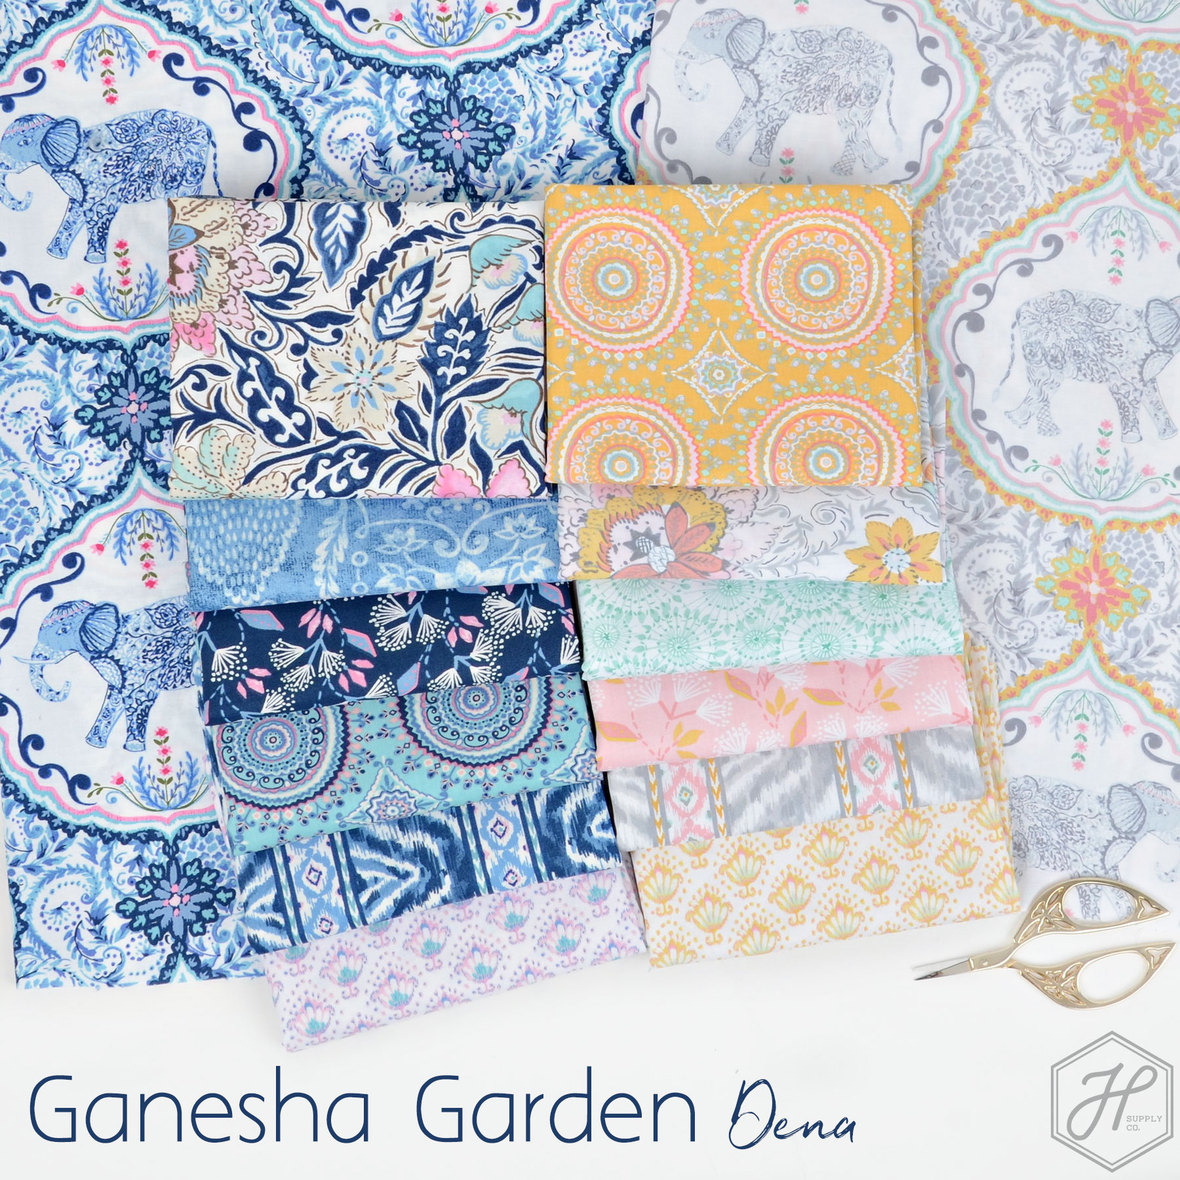 Ganesha-Garden-Fabric-Dena-at-Hawthorne-Supply-Co